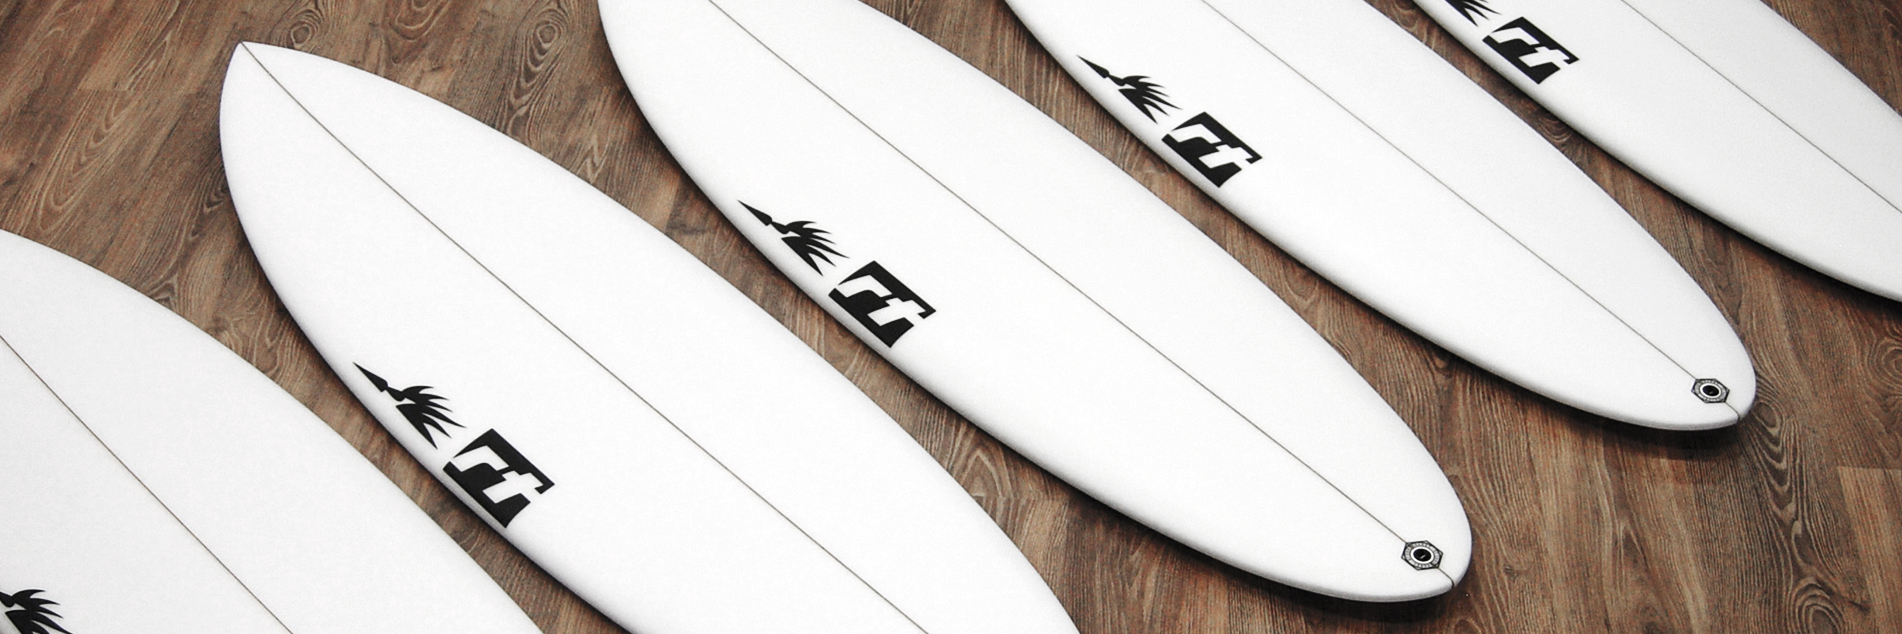 RTSurfboards_rover-04b